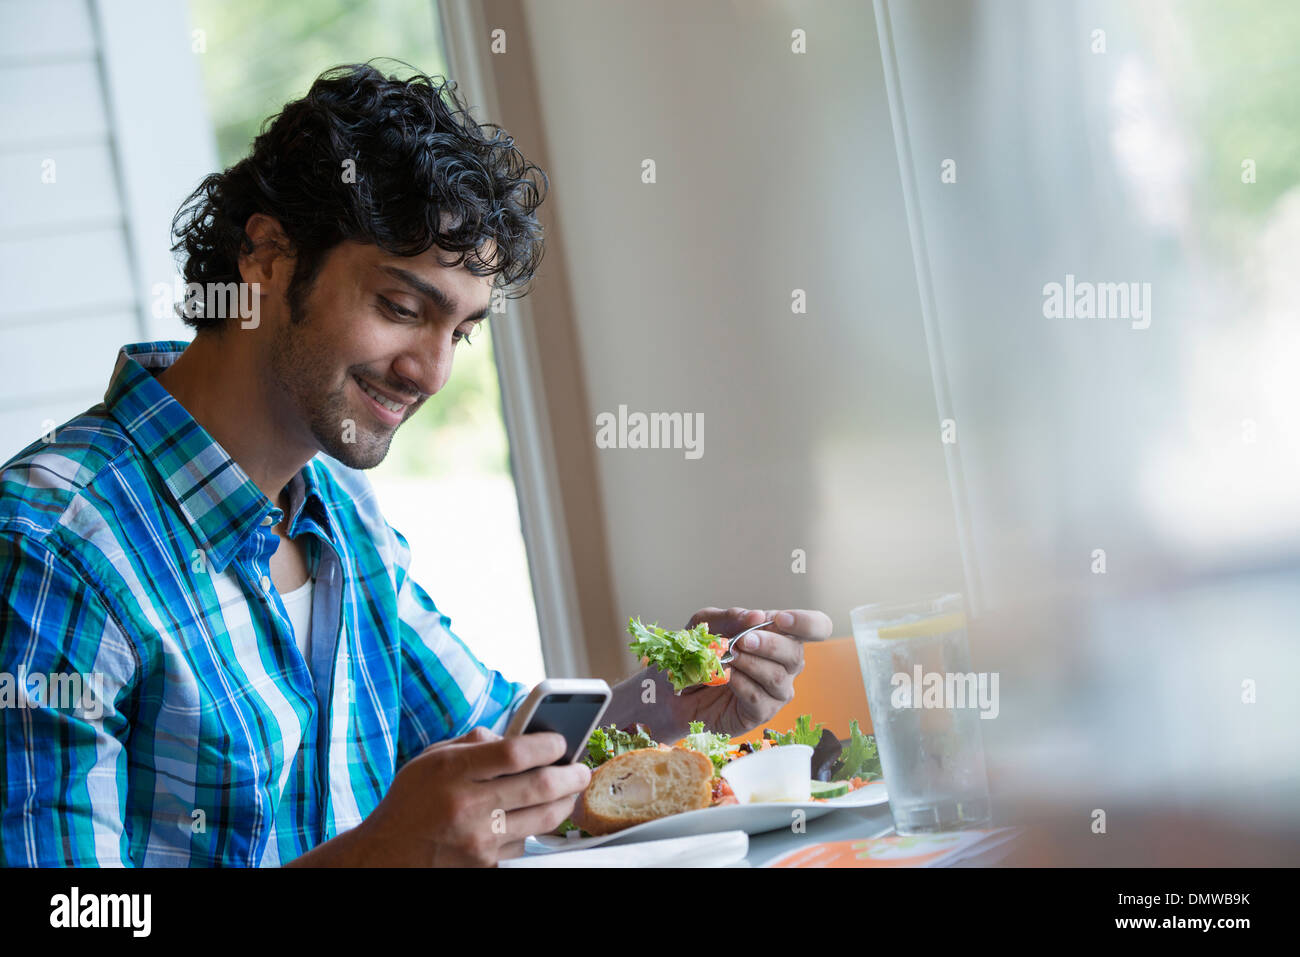 A  man seated checking his phone and eating in a cafe. - Stock Image